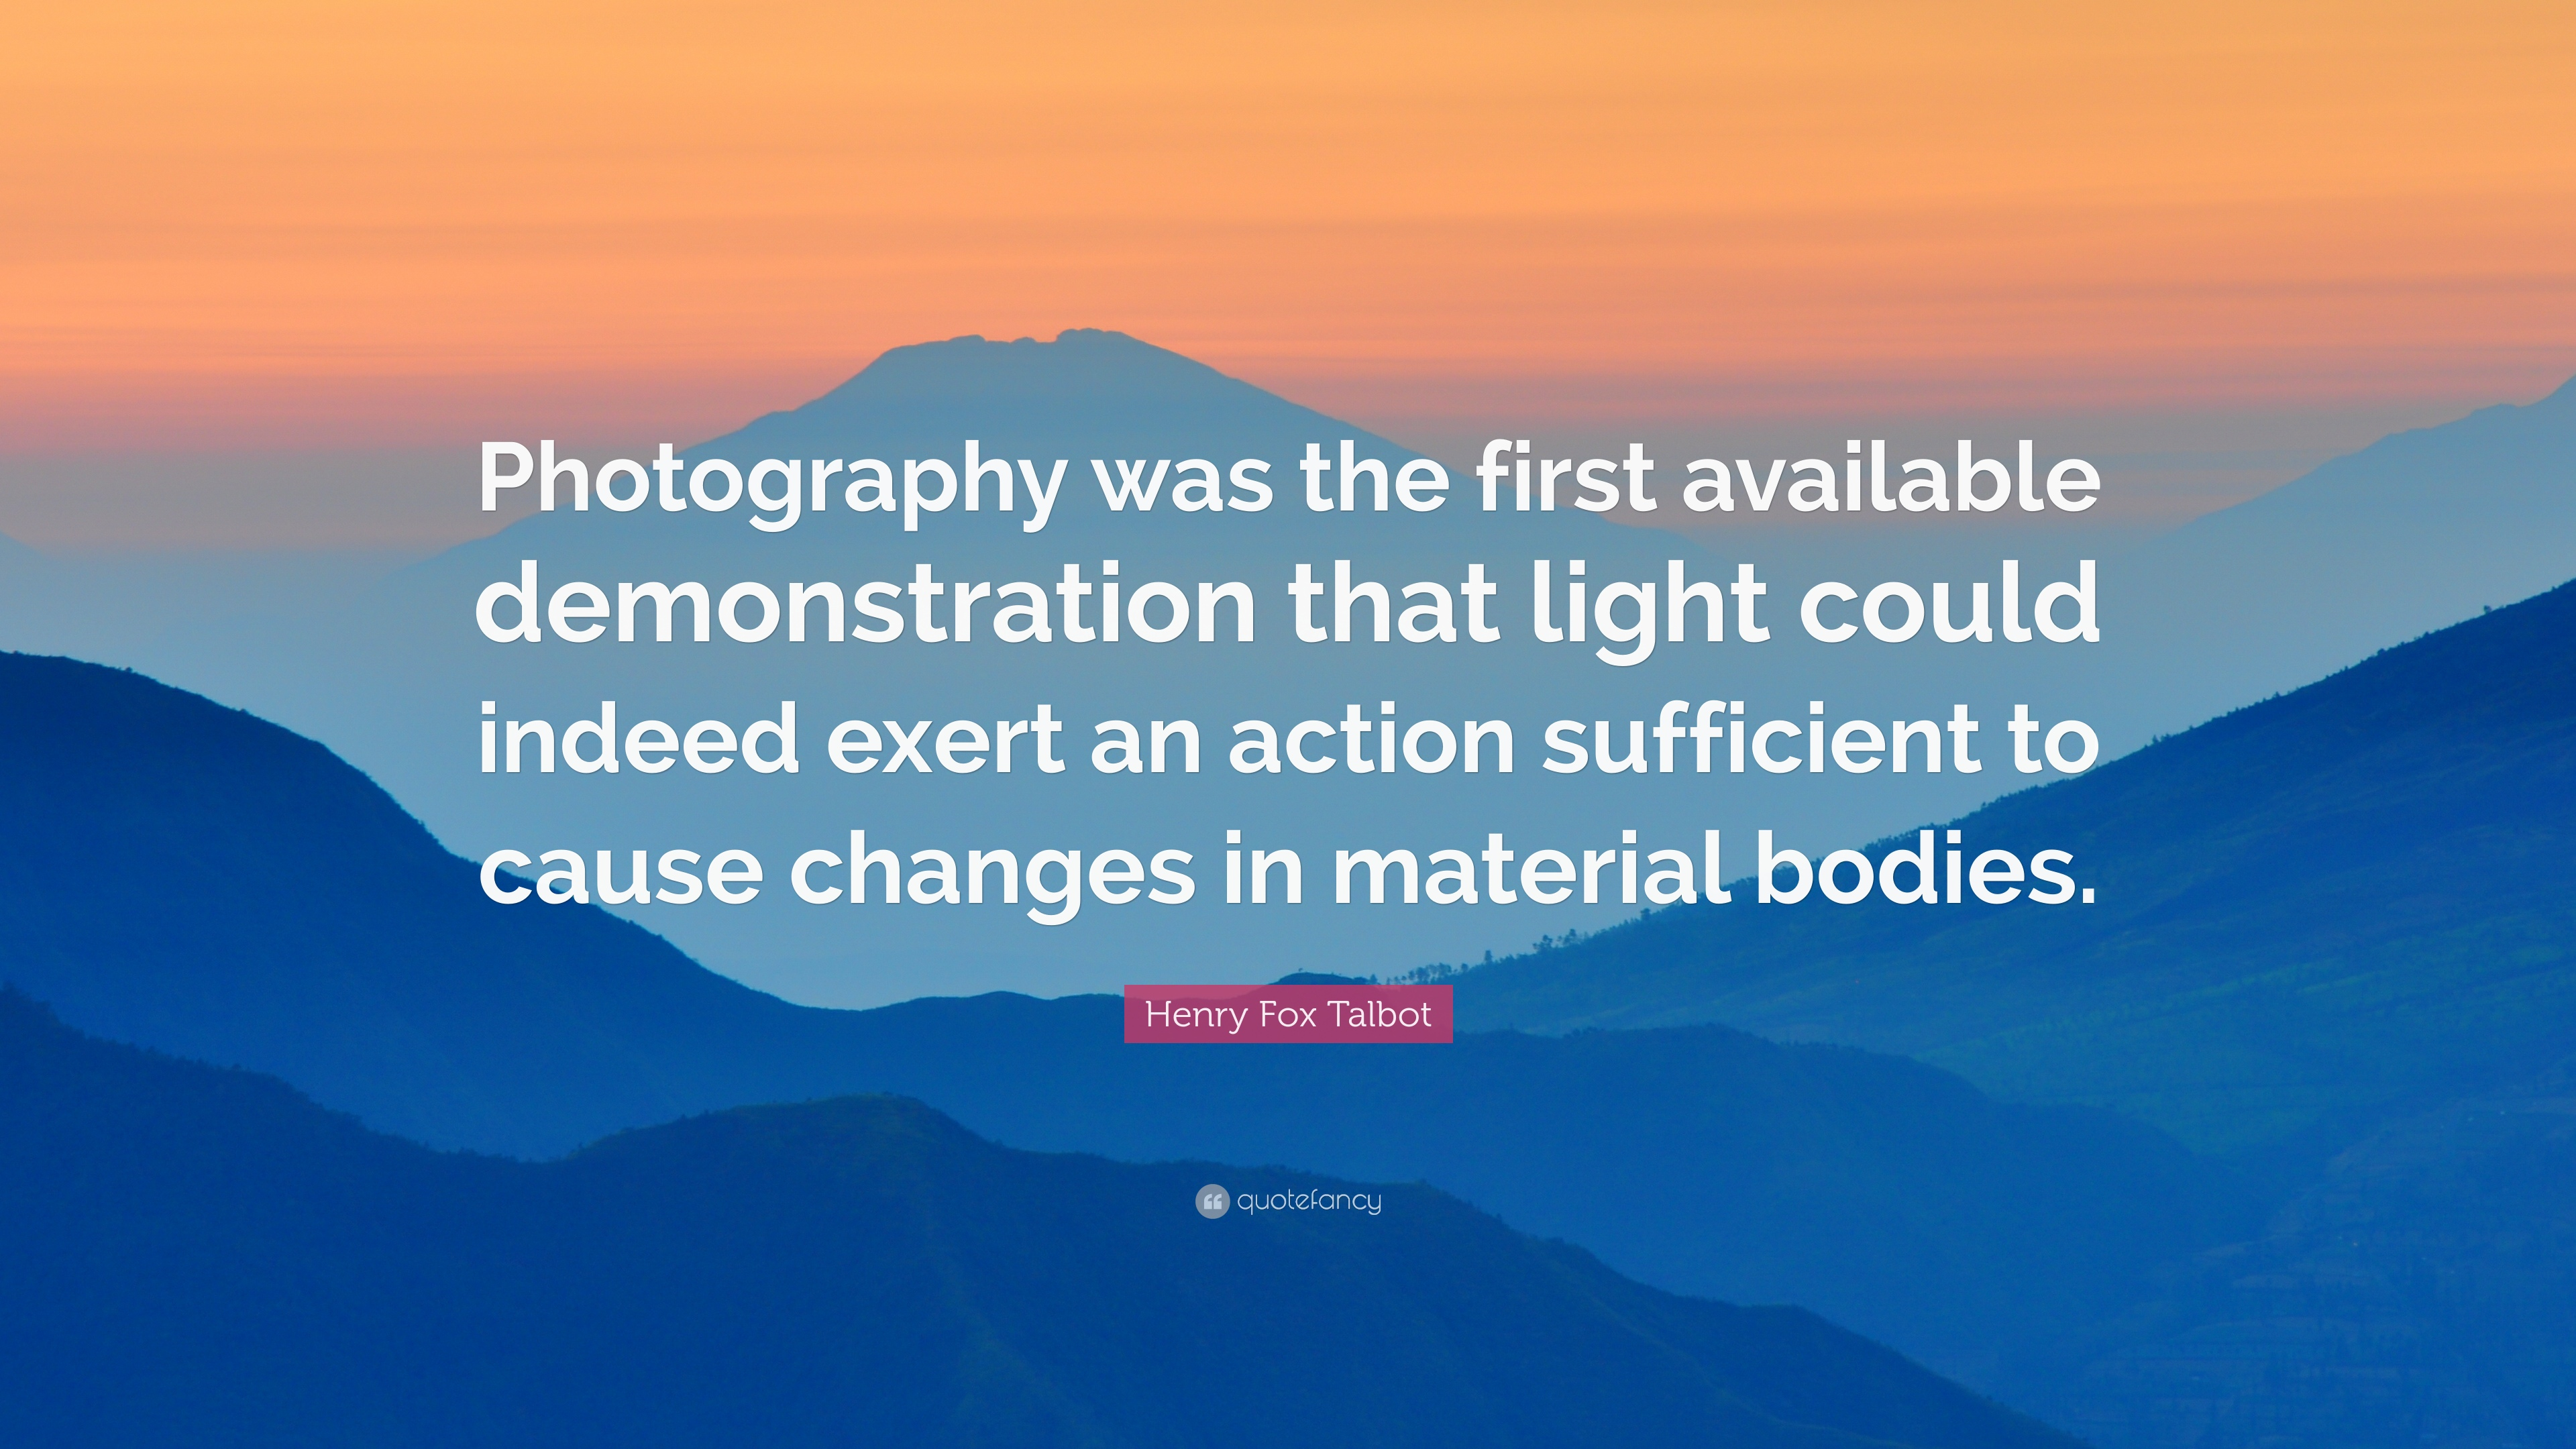 What Fox Talbot Could Have Done With >> Henry Fox Talbot Quote Photography Was The First Available